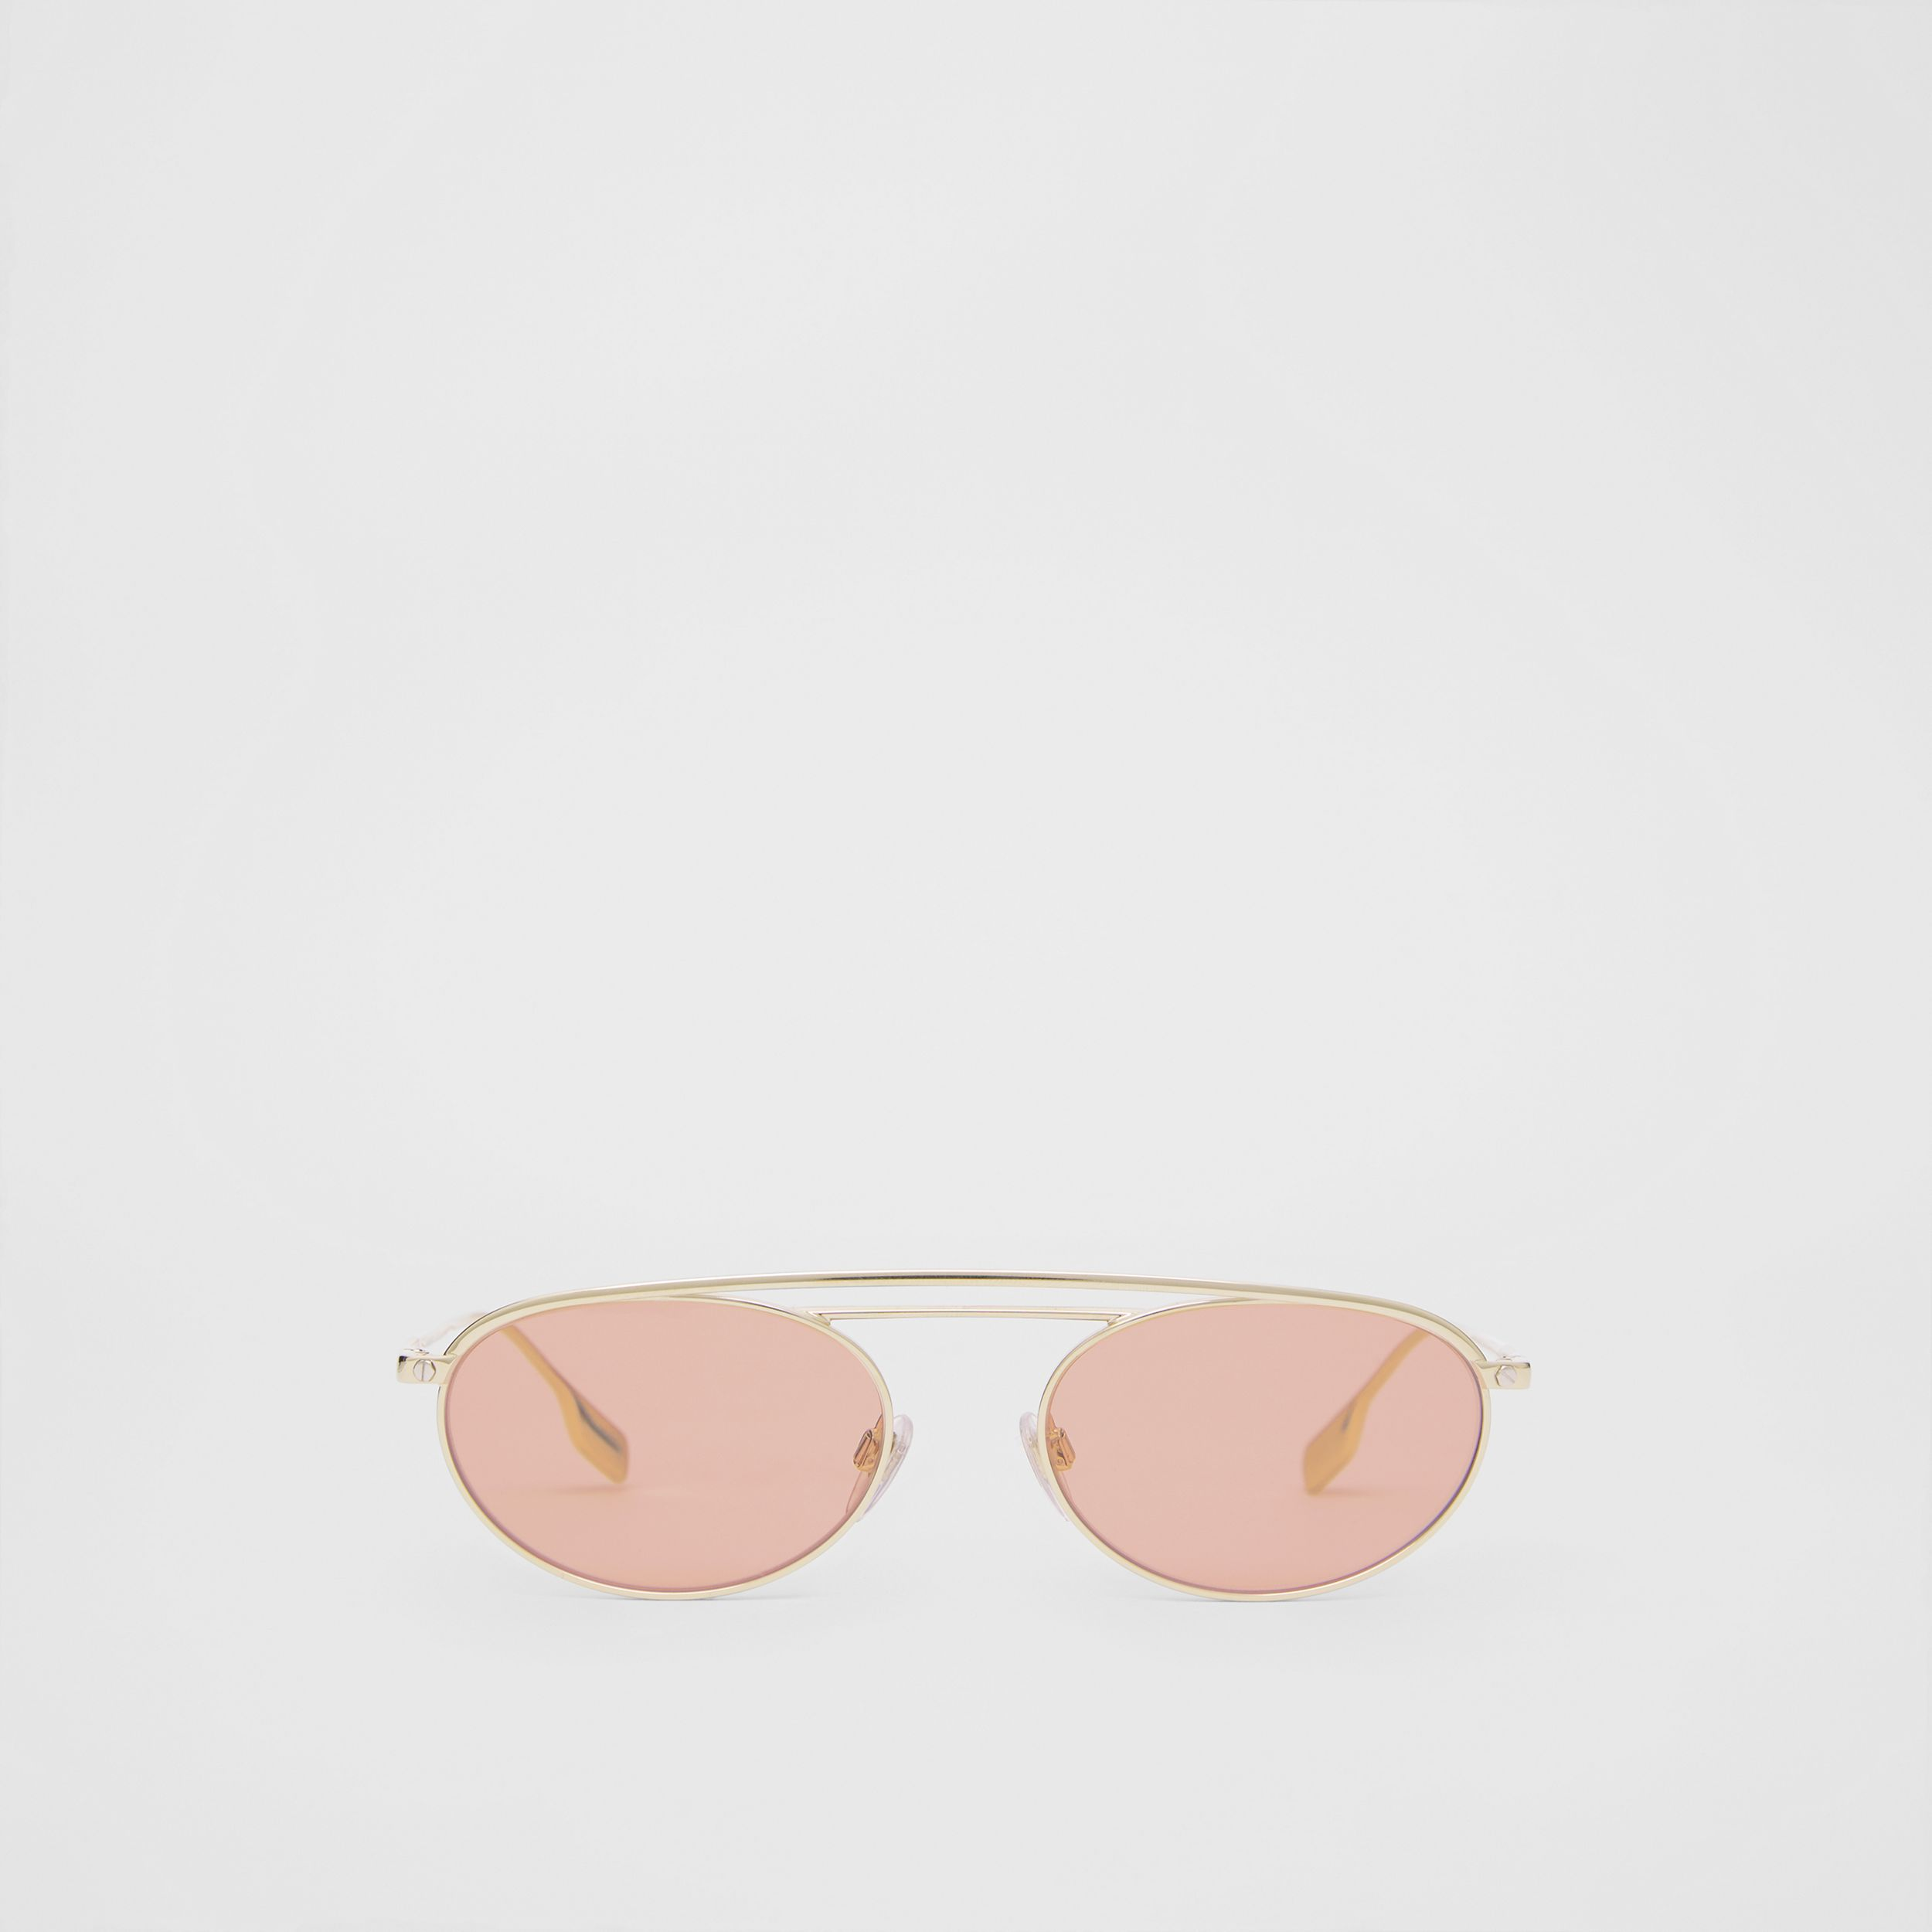 Oval Frame Sunglasses in Light Pink - Women | Burberry - 1